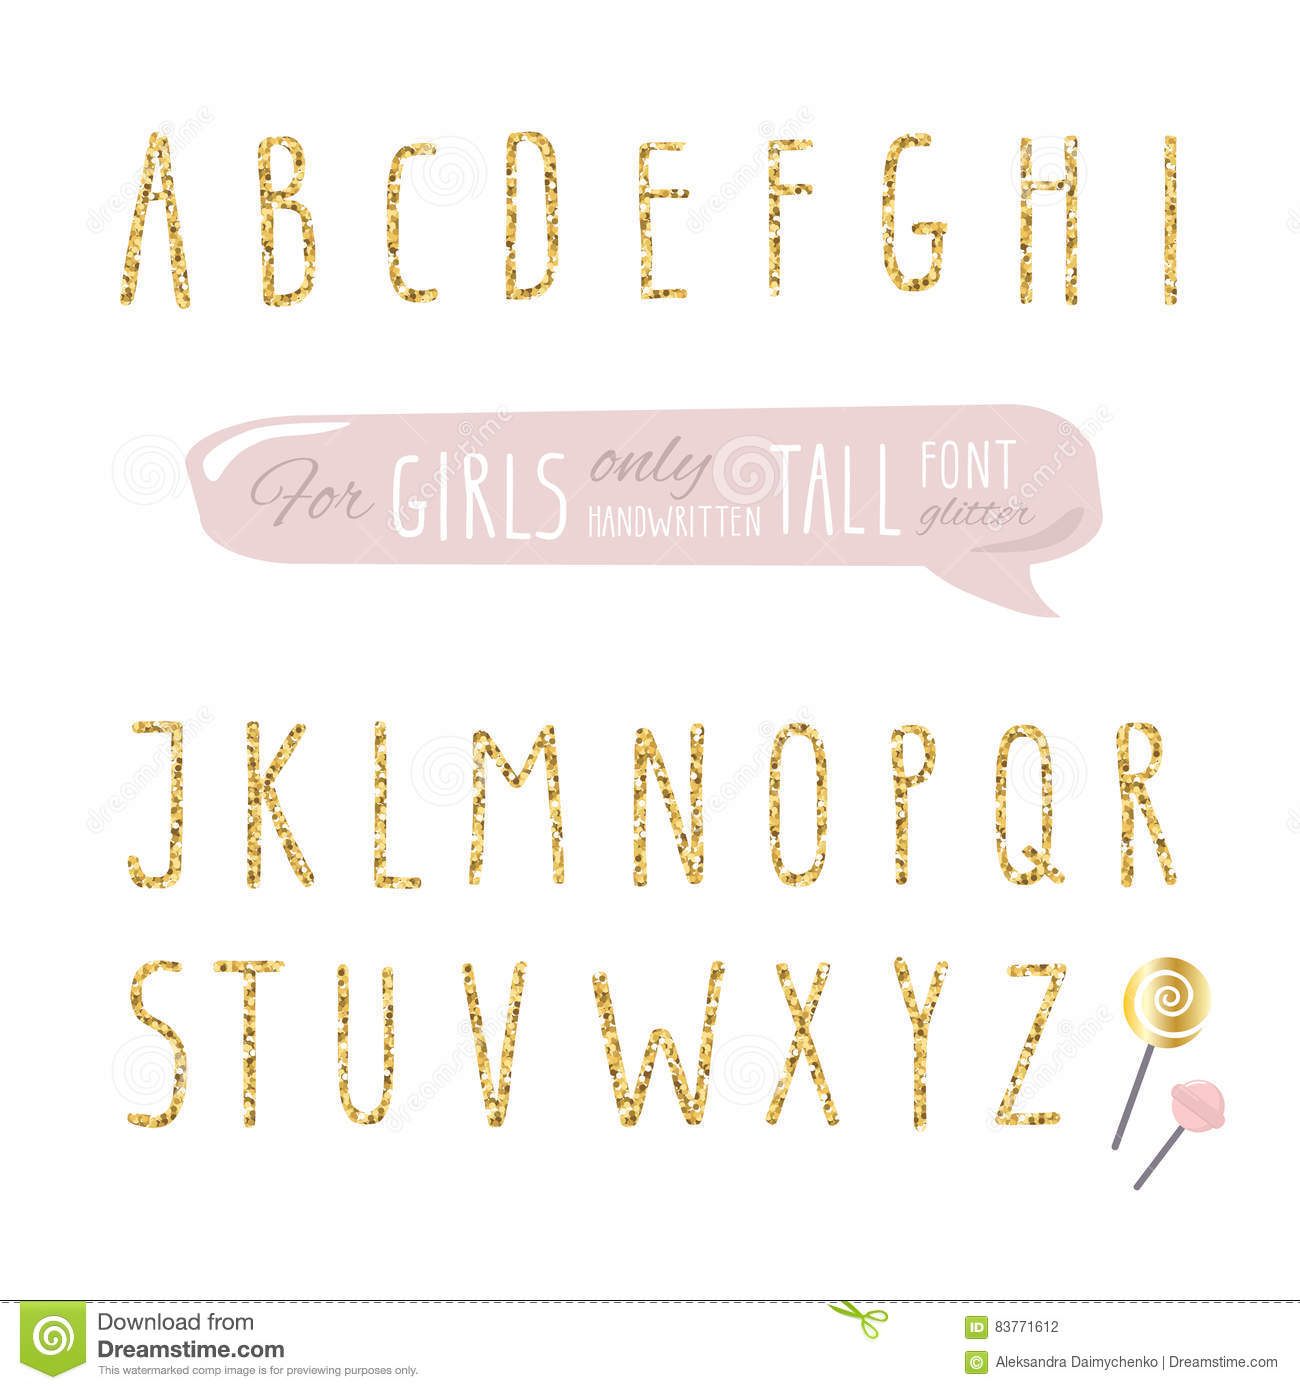 Download Cute Hand Drawn Narrow Glitter Font For Girls Tall Shiny Alphabet Doodle Written